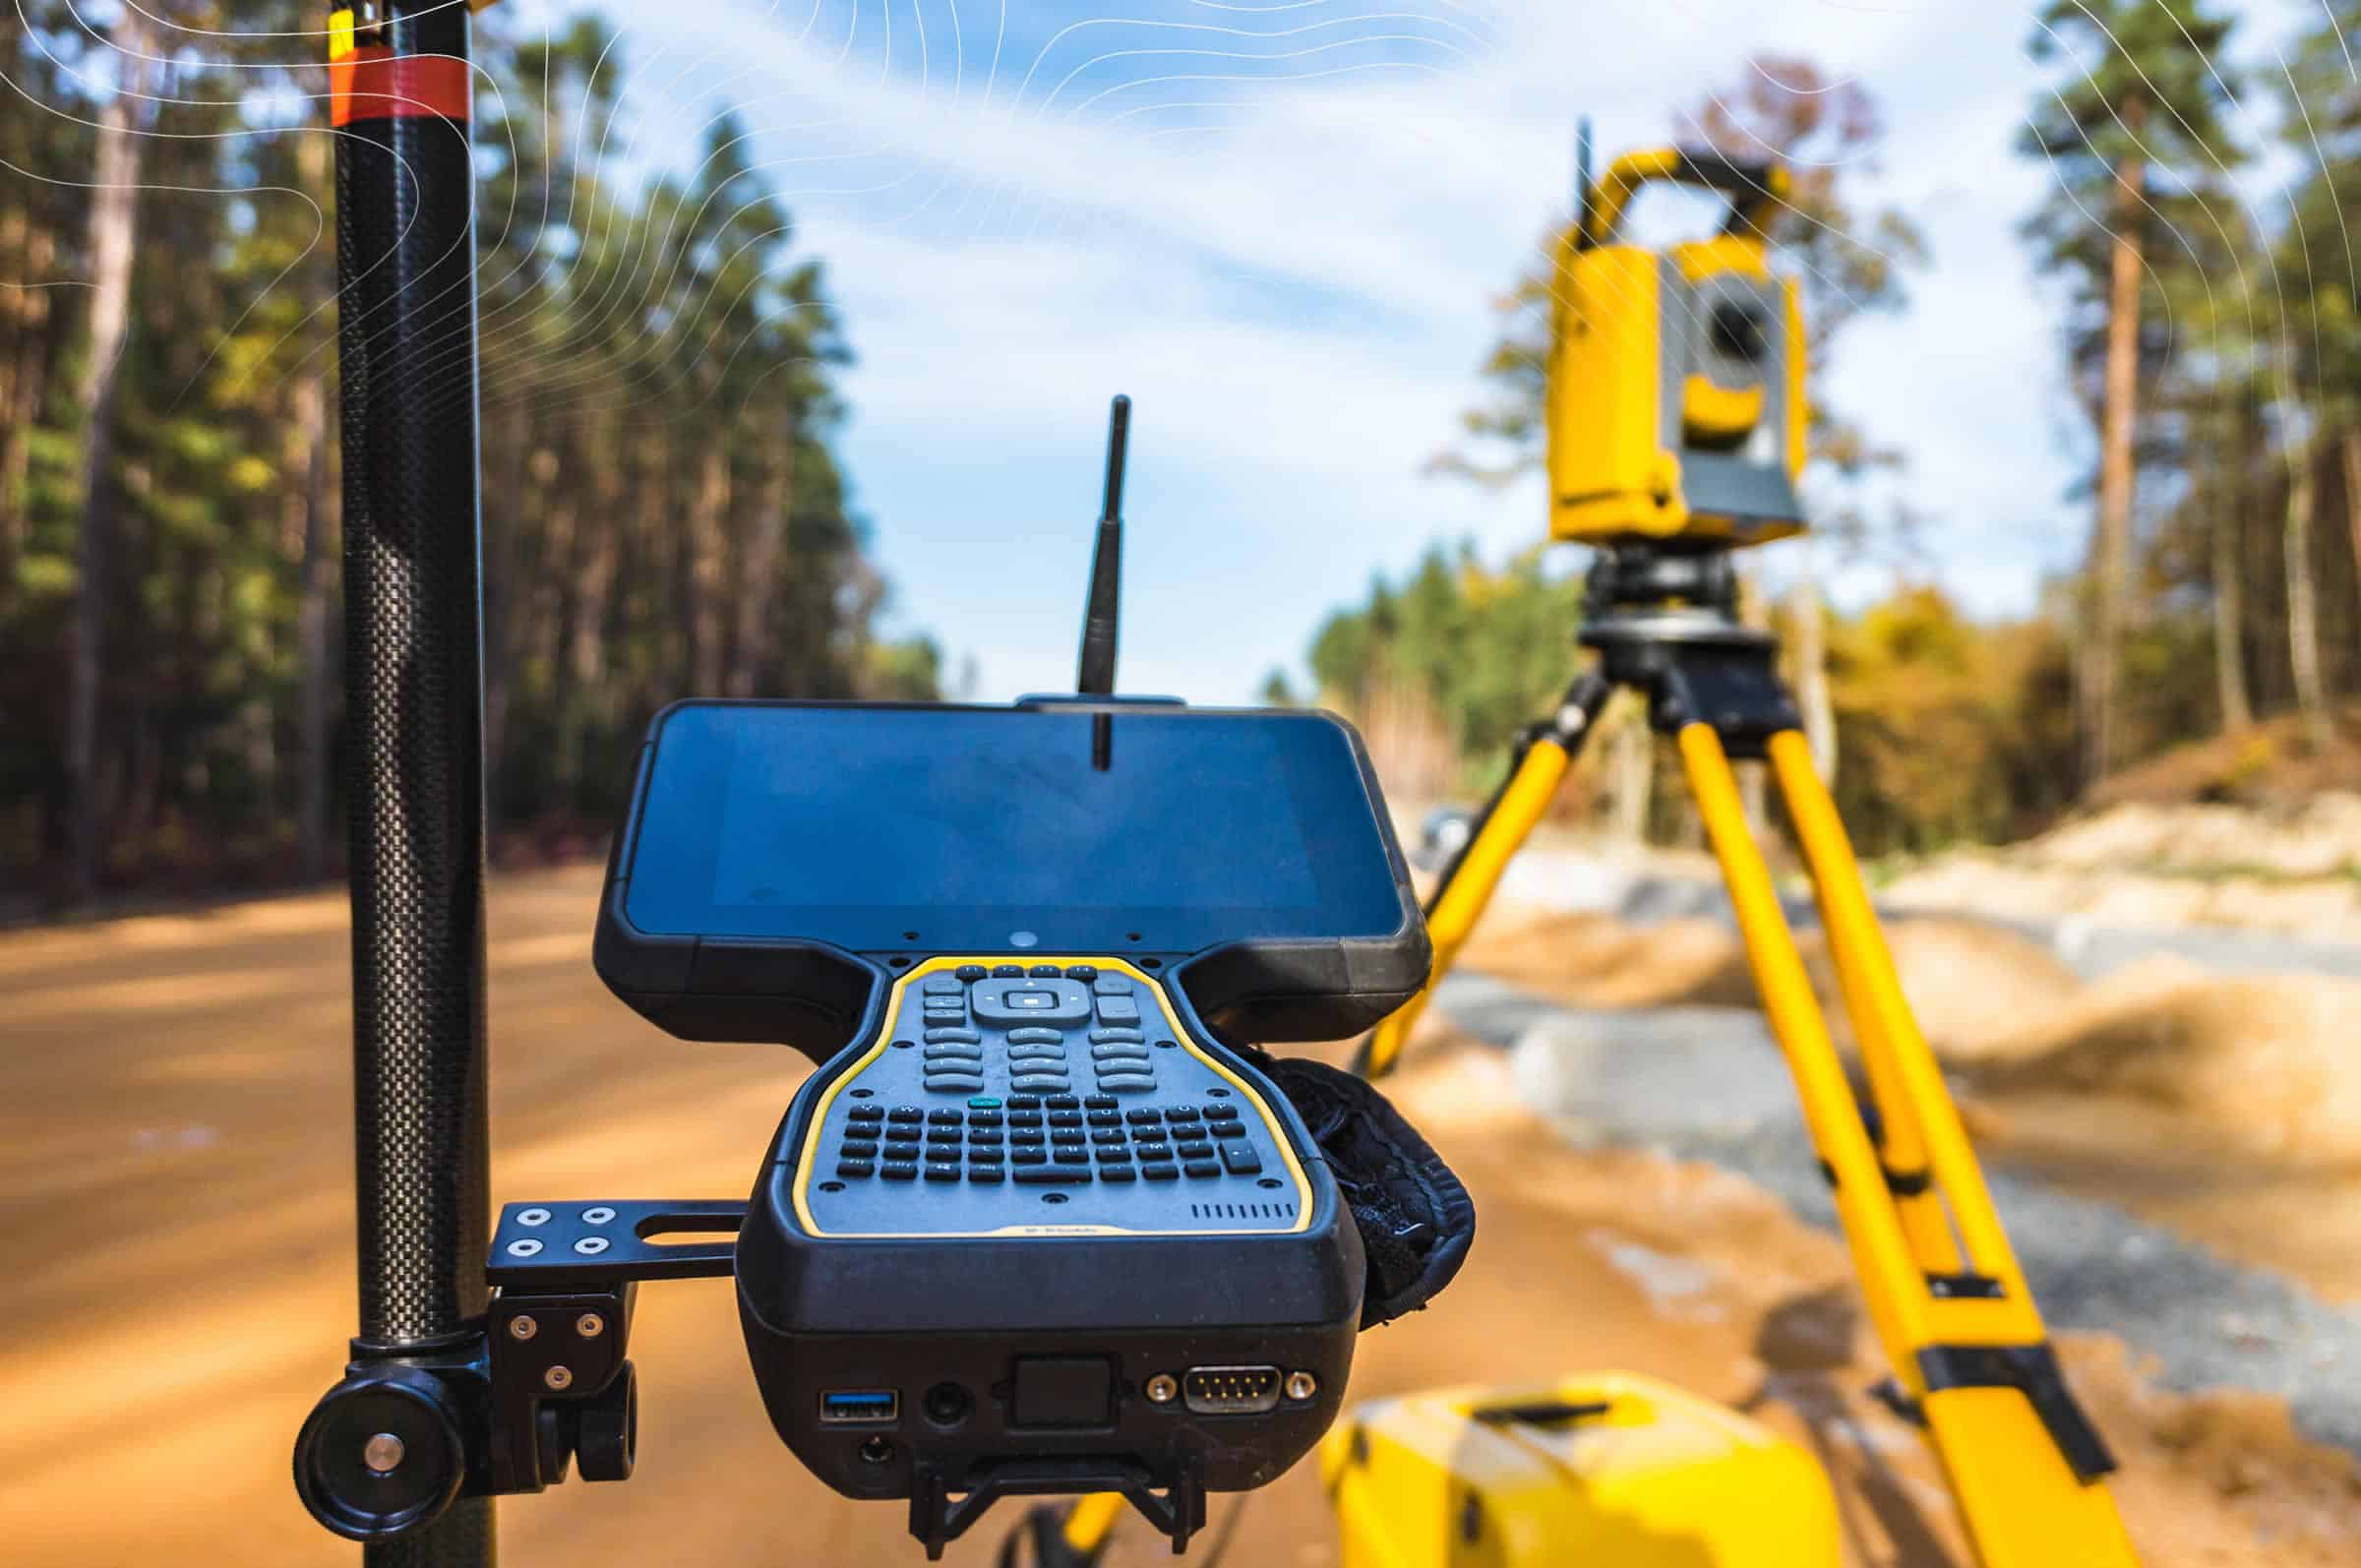 Surveyor, Geomatics and GIS company servicing Alberta and British Columbia